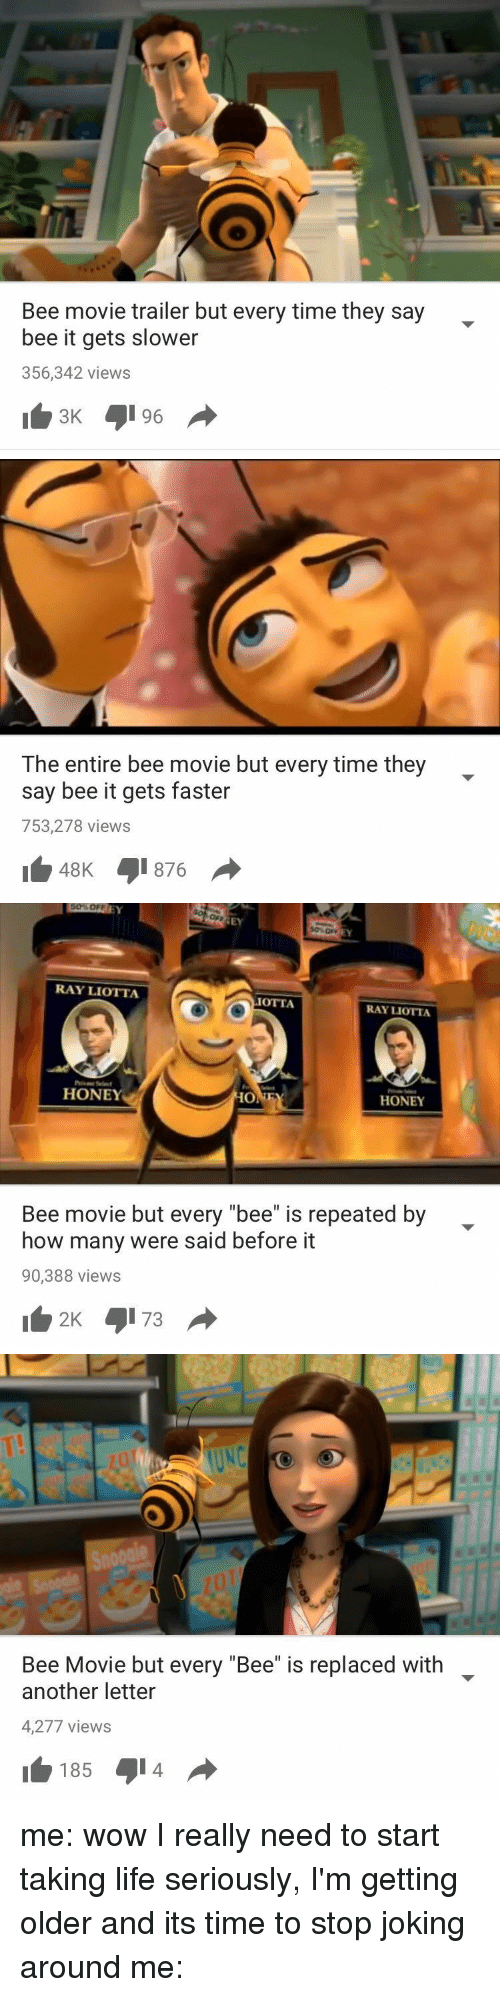 "Ray Liotta: Bee movie trailer but every time they say  bee it gets slower  356,342 views   The entire bee movie but every time they  say bee it gets faster  753,278 views  48K 876   RAY LIOTTA  OTTA  RAY LIOTTA  HONEY  HO  HONEY  Bee movie but every ""bee"" is repeated by  how many were said before it  90,388 views  2K 4173   Bee Movie but every ""Bee"" is replaced with  another letter  4,277 views  185 4014 me: wow I really need to start taking life seriously, I'm getting older and its time to stop joking around me:"